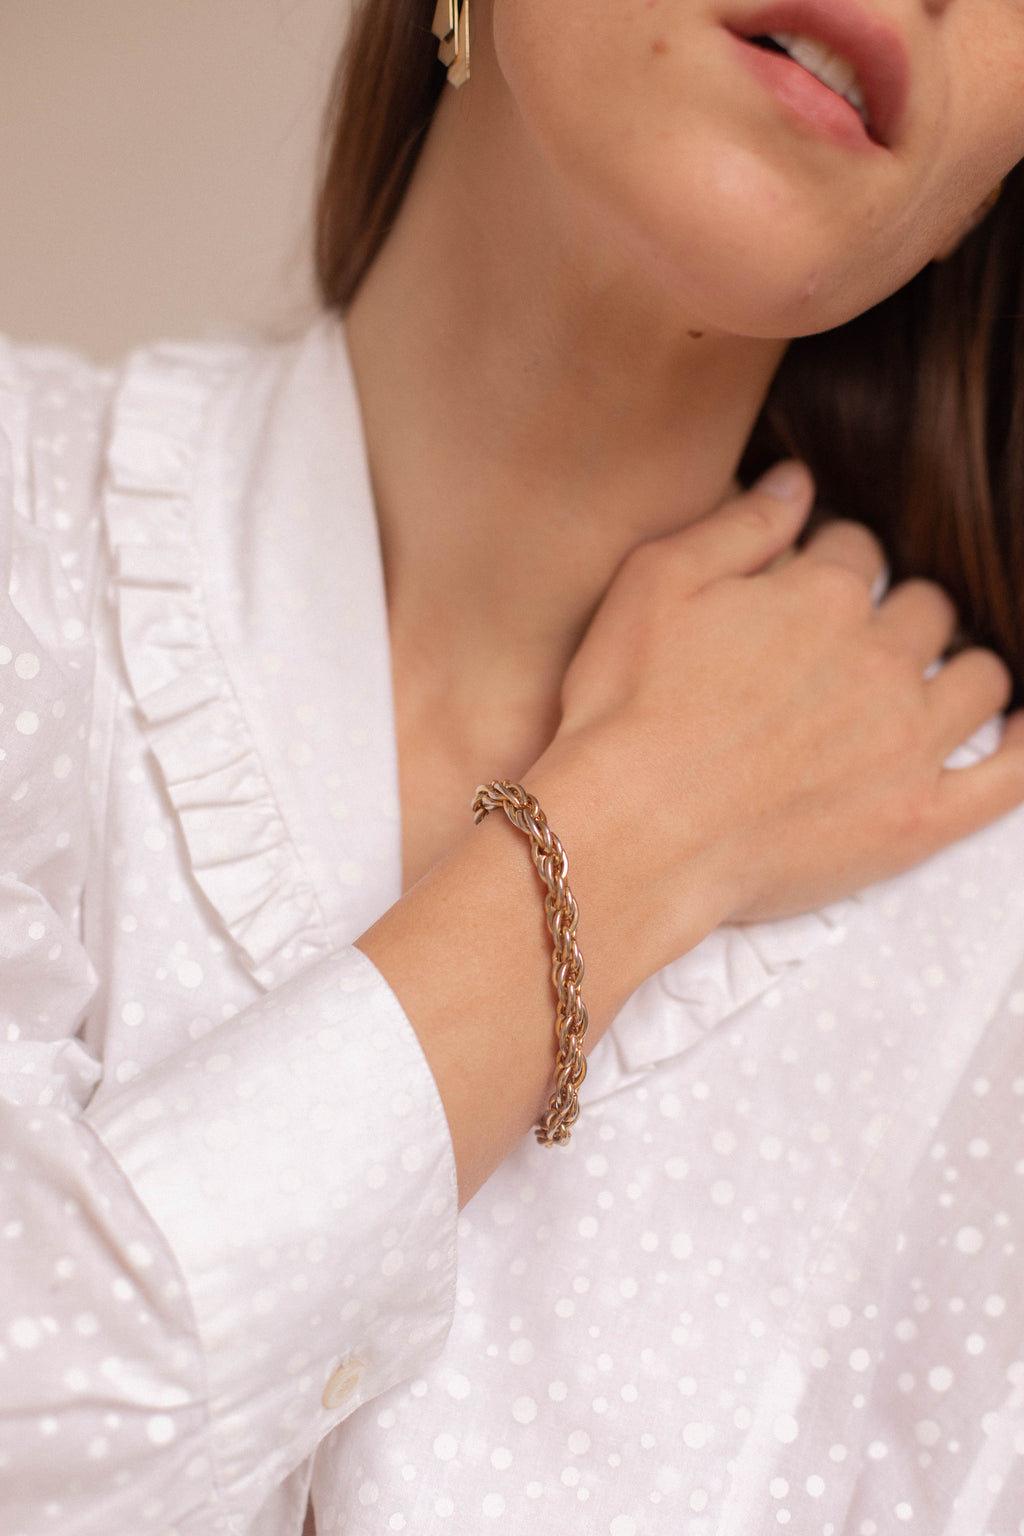 Anita is Vintage Gold Twist Chain Bracelet